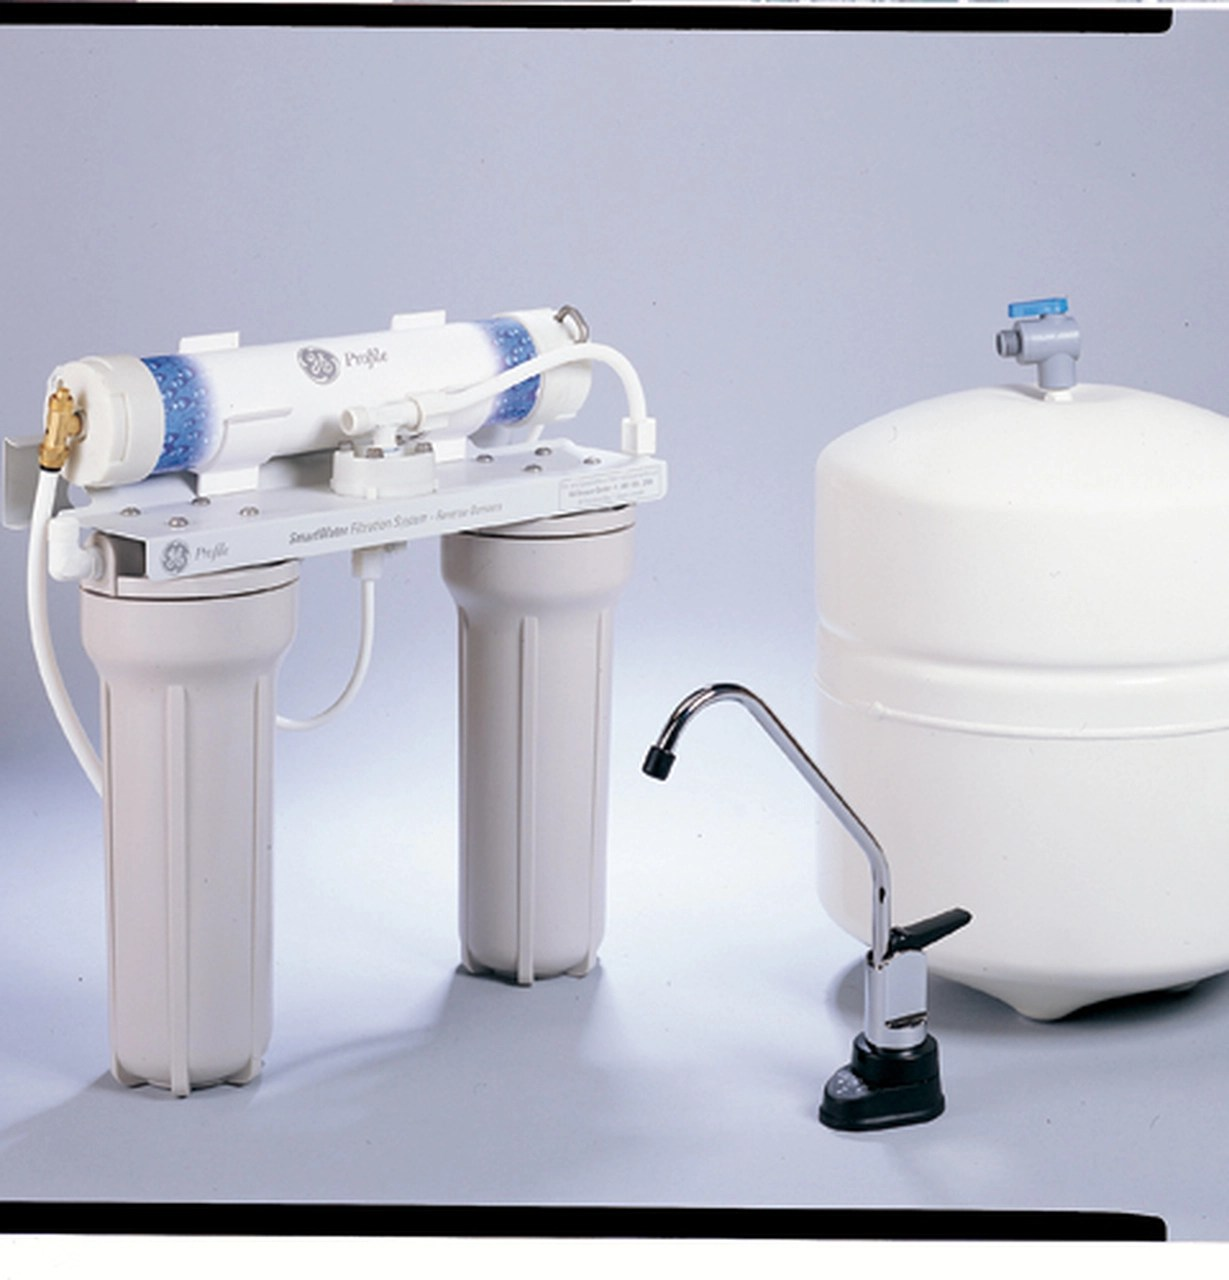 ge profile reverse osmosis filtration